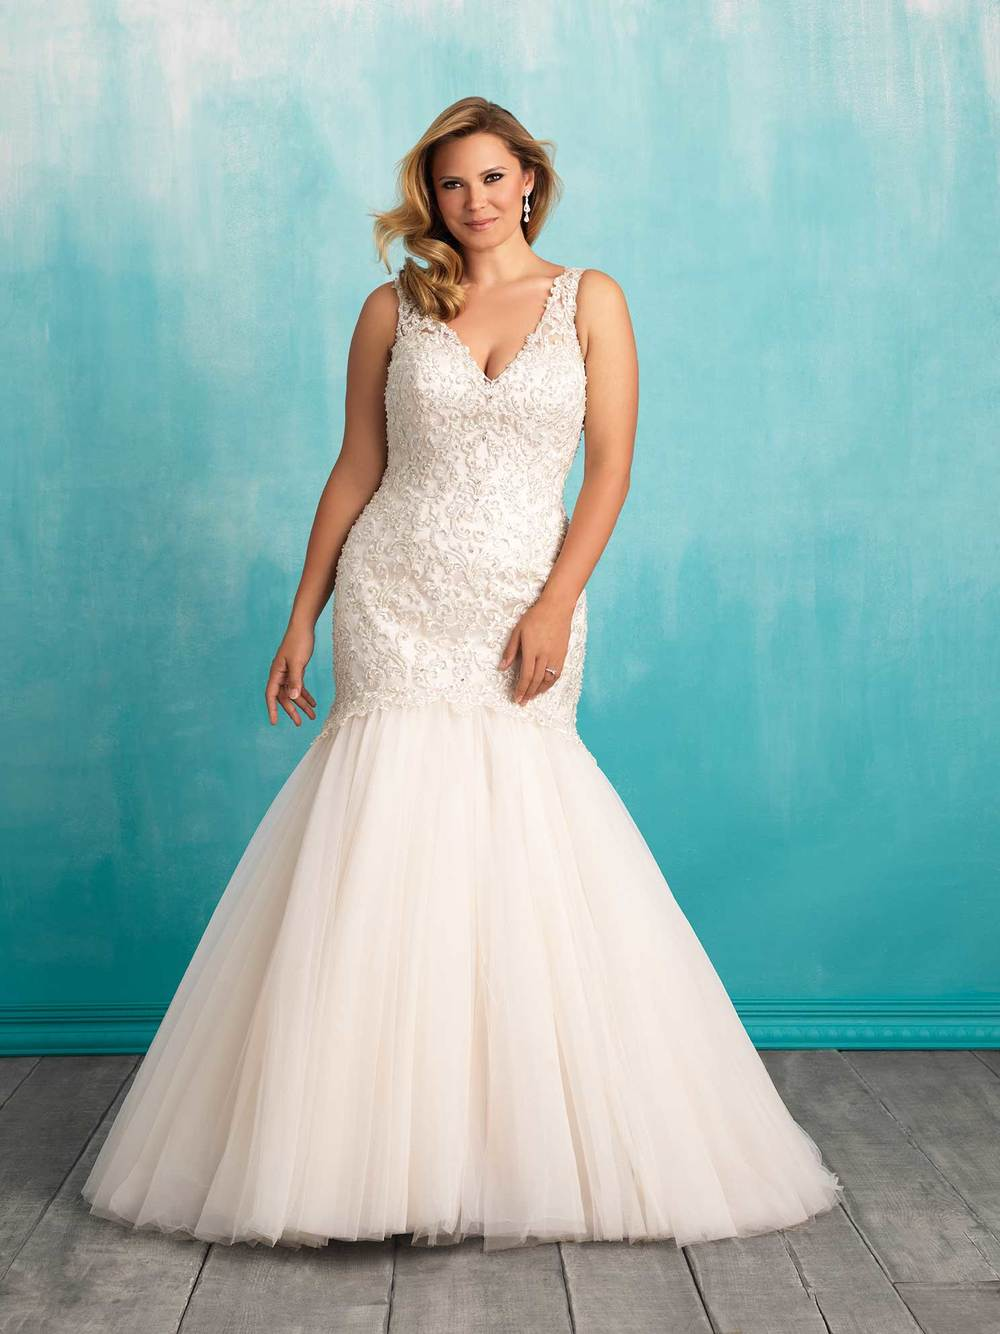 Wedding Dresses — Eleganza Tuxedo & Bridal Gallery